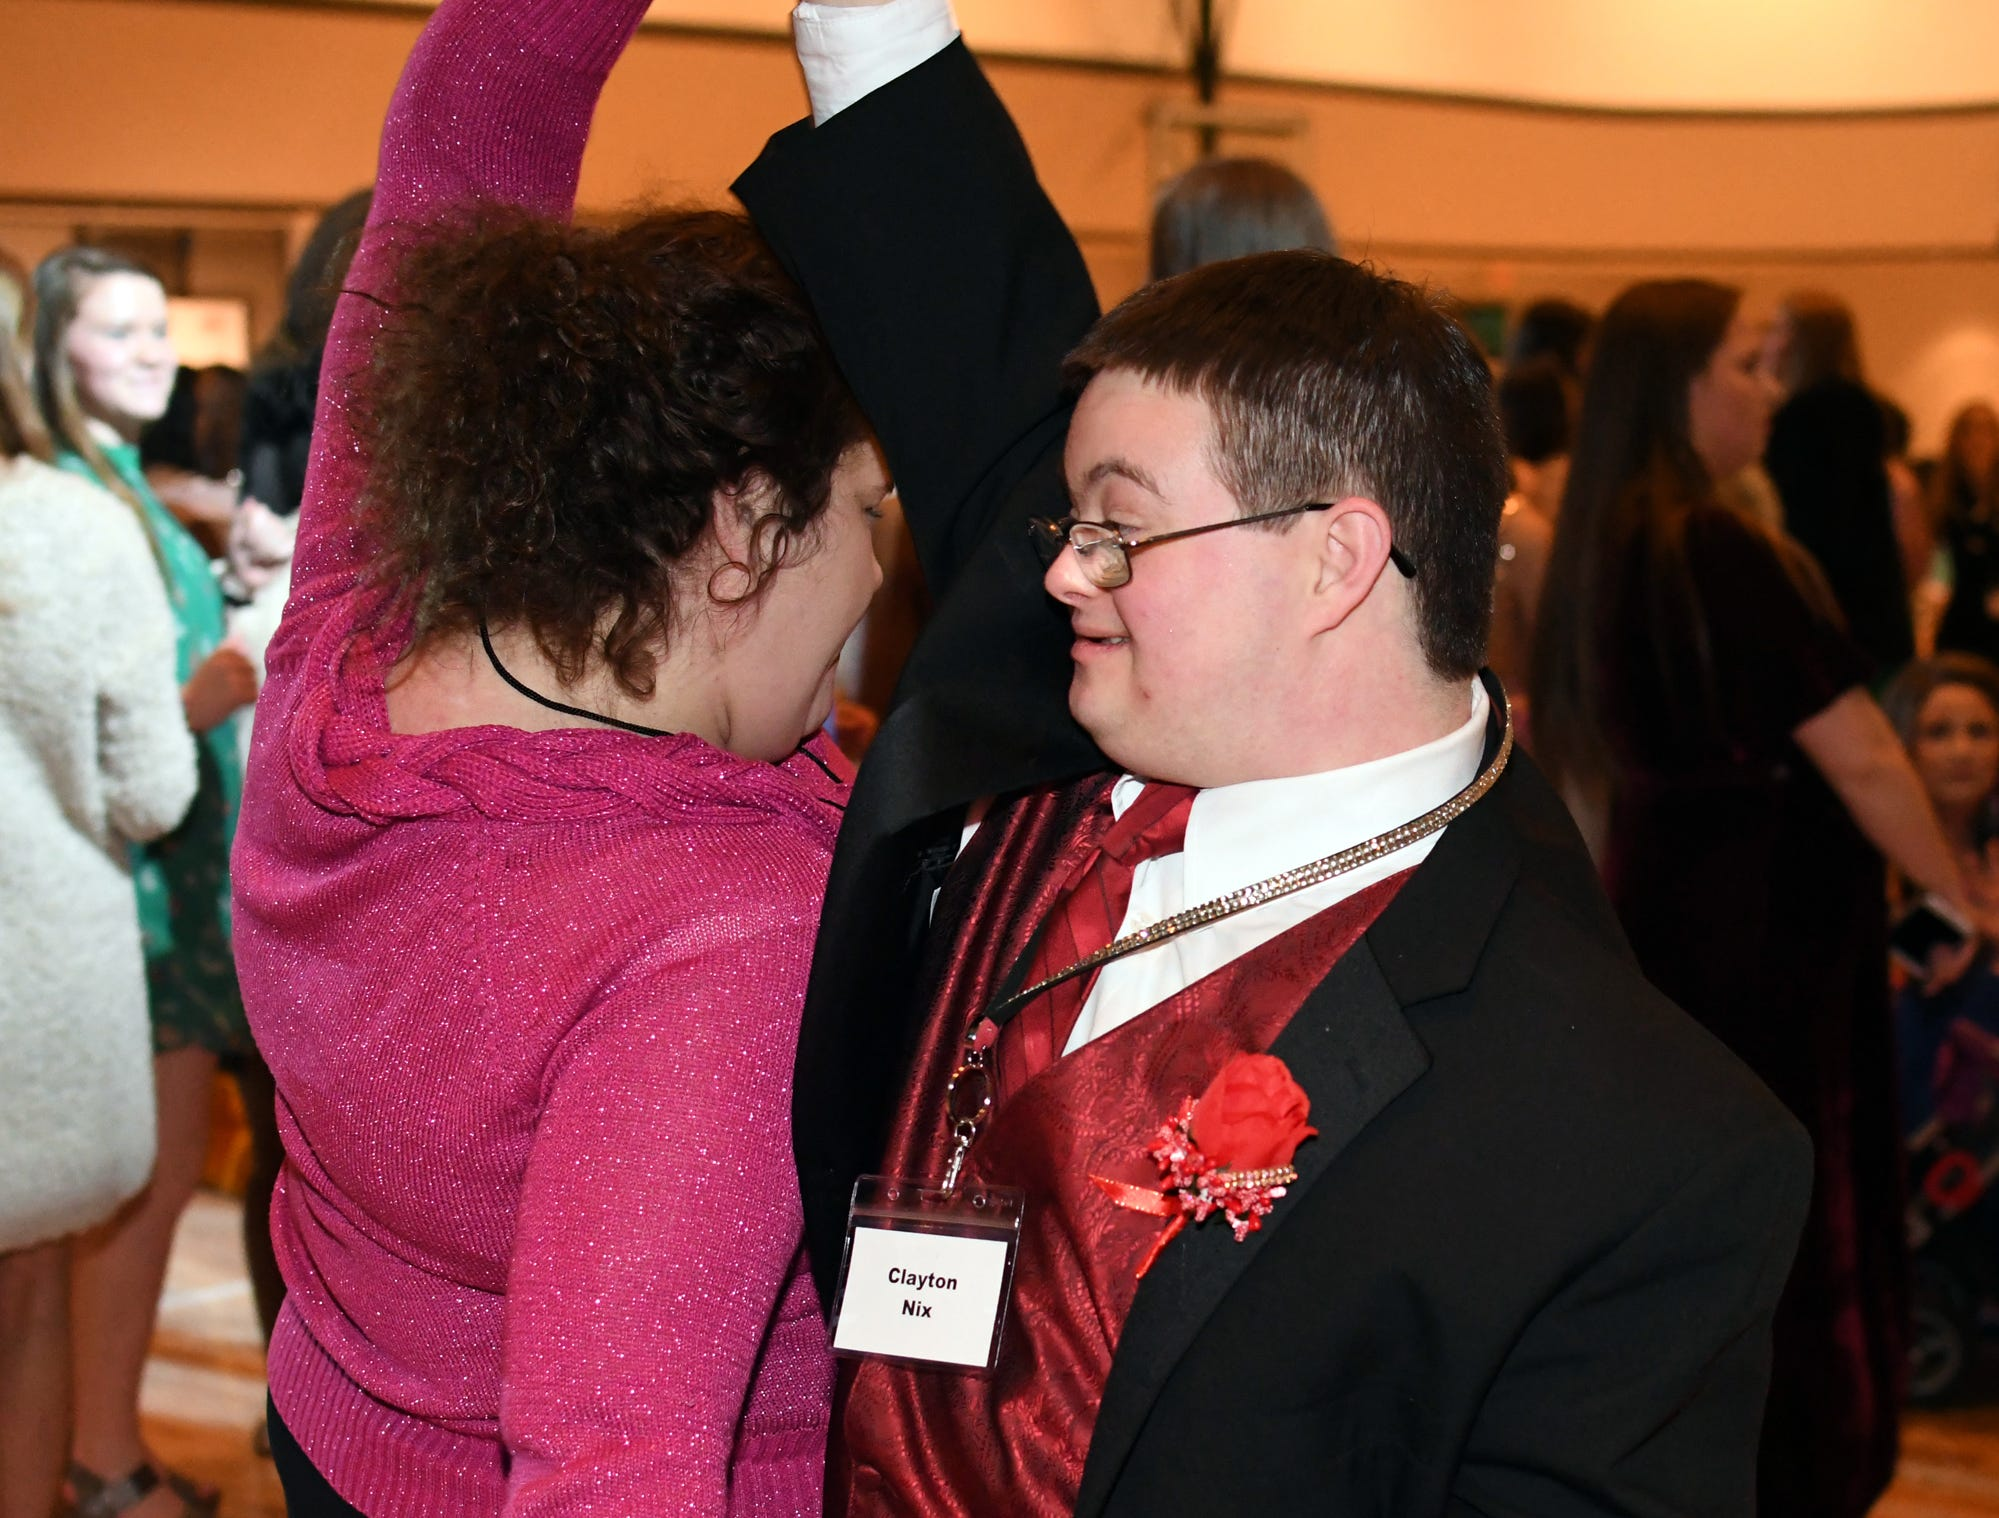 Clayton Nix dances during the Night to Shine Prom at Temple Baptist Church on Friday, February 8, 2019. Churches around the world hosted the prom by the Tim Tebow Foundation for people with special needs.